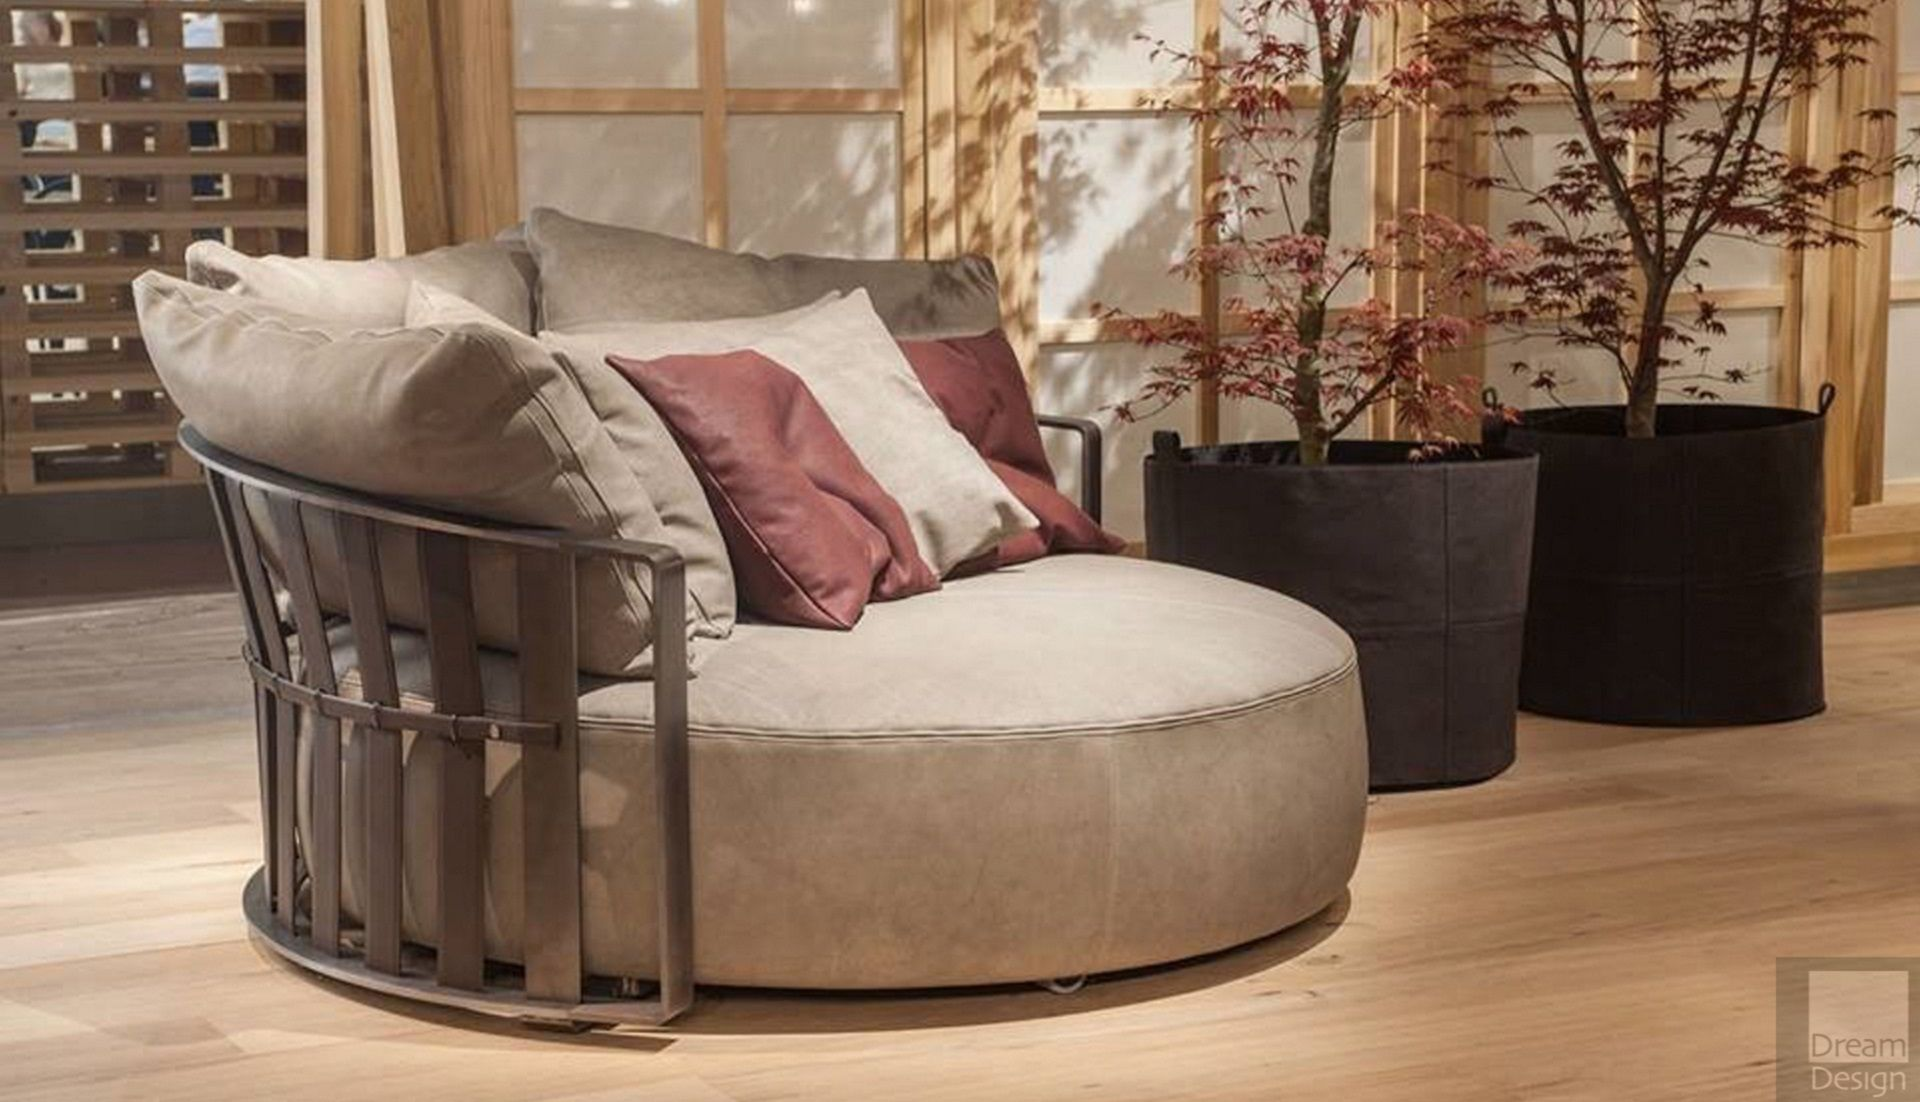 Chaise Longue - Everything But Ordinary